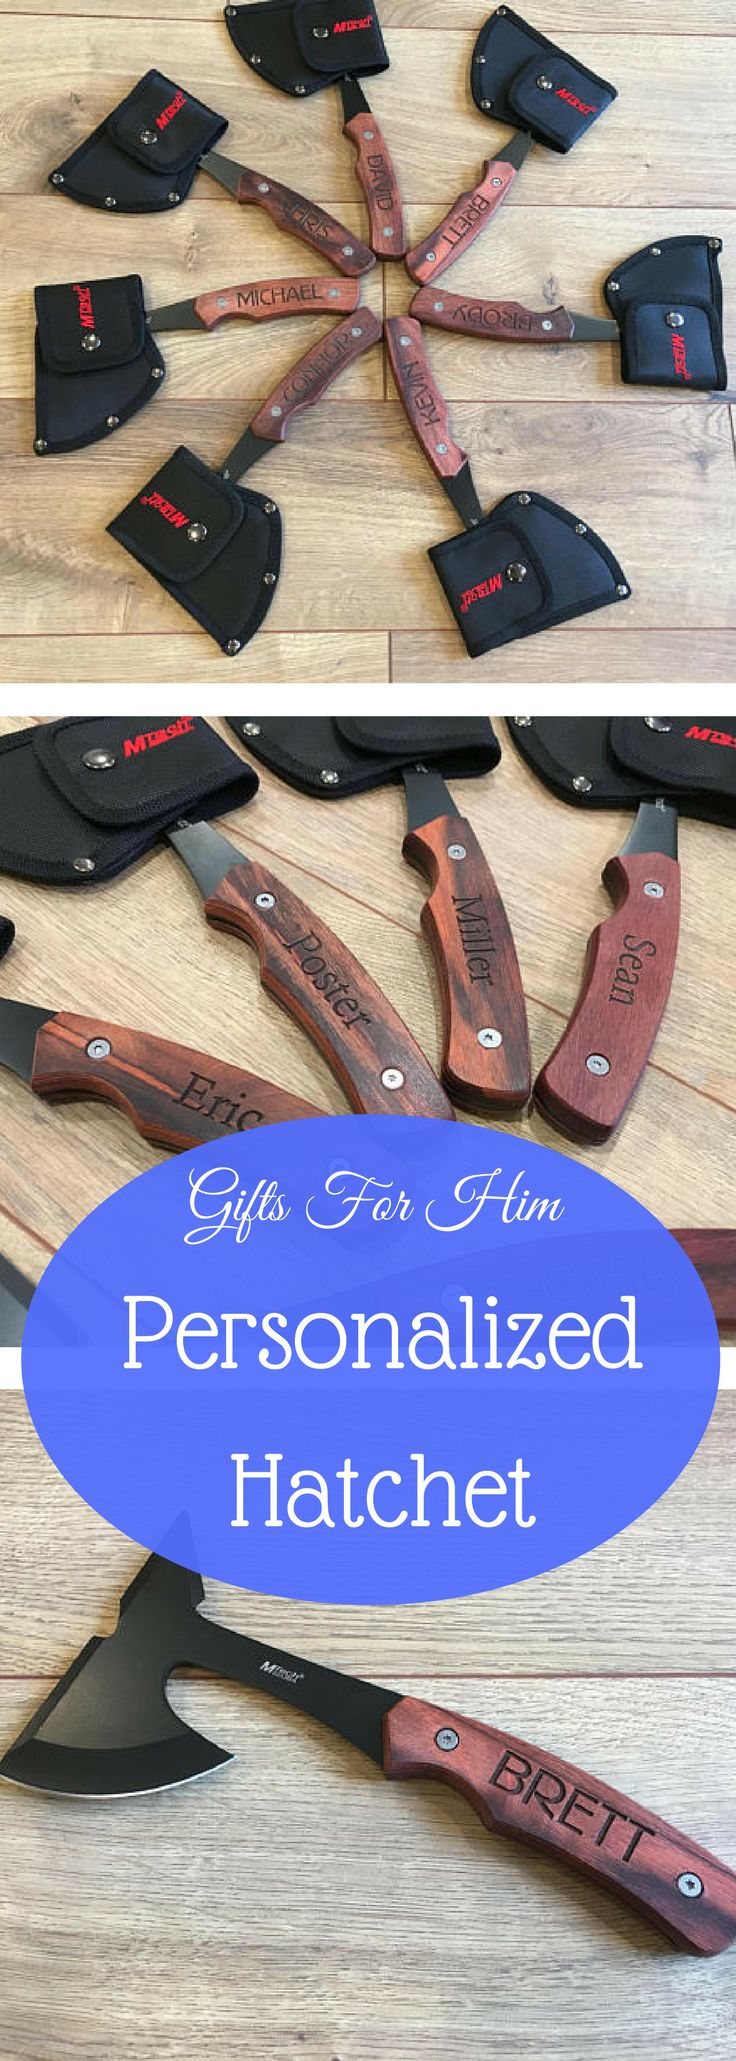 Valentines Day Gift for Him   Guy Gifts   Guy Best Friend Gift   Gifts for Men   Gifts for Boyfriend   Gifts for Him   Engraved Axe, Hatchet #valentin…